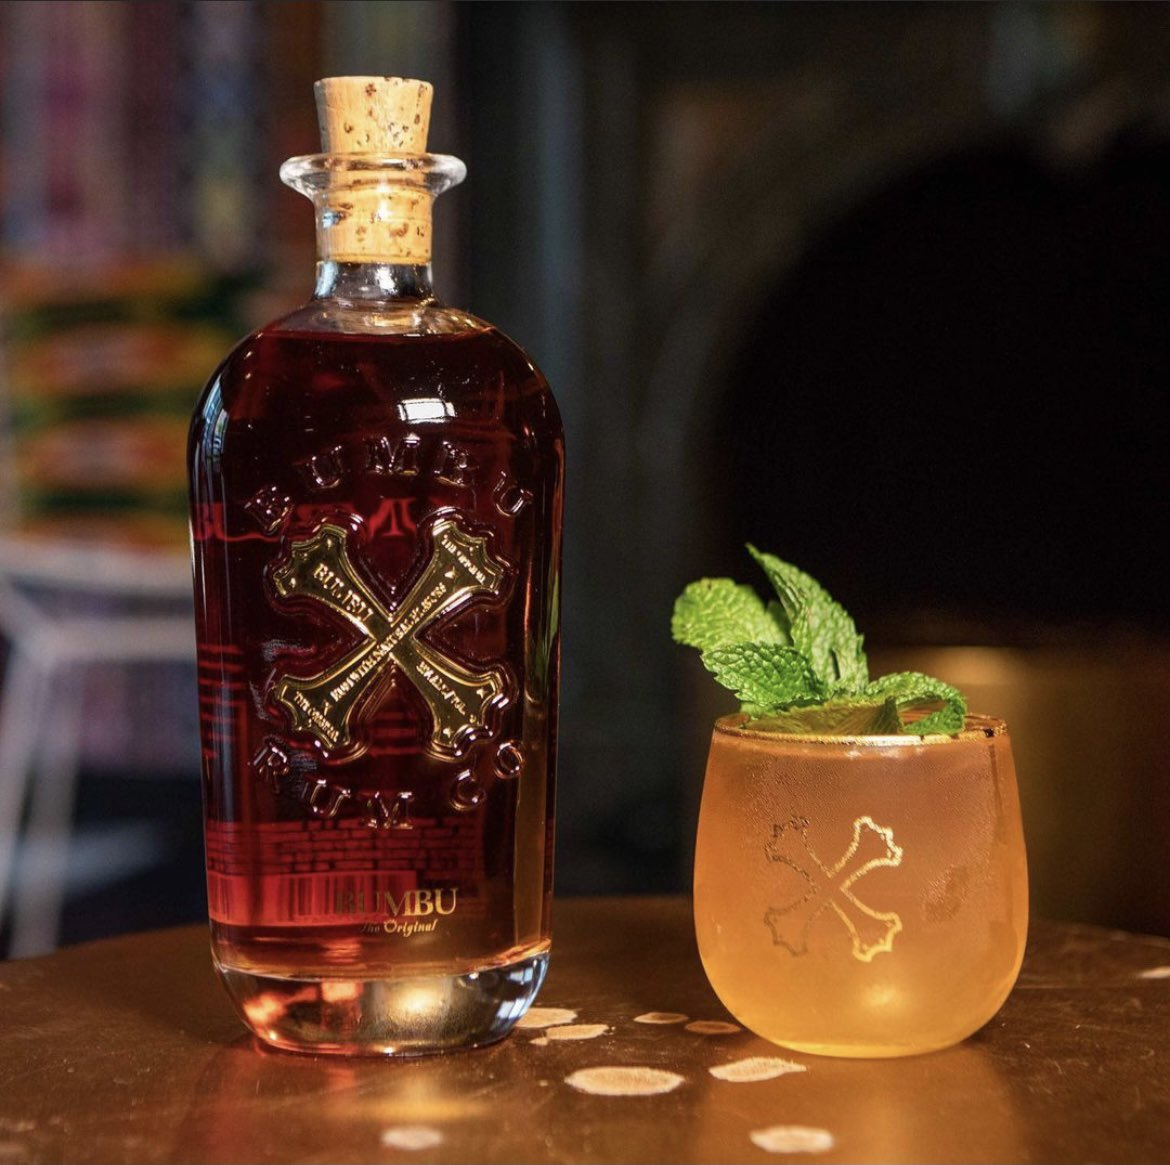 Who's sipping #Bumbu tonight?   A simple at-home cocktail is #Bumbu, OJ and ginger ale (with mint, if handy, to garnish)  Enjoy!